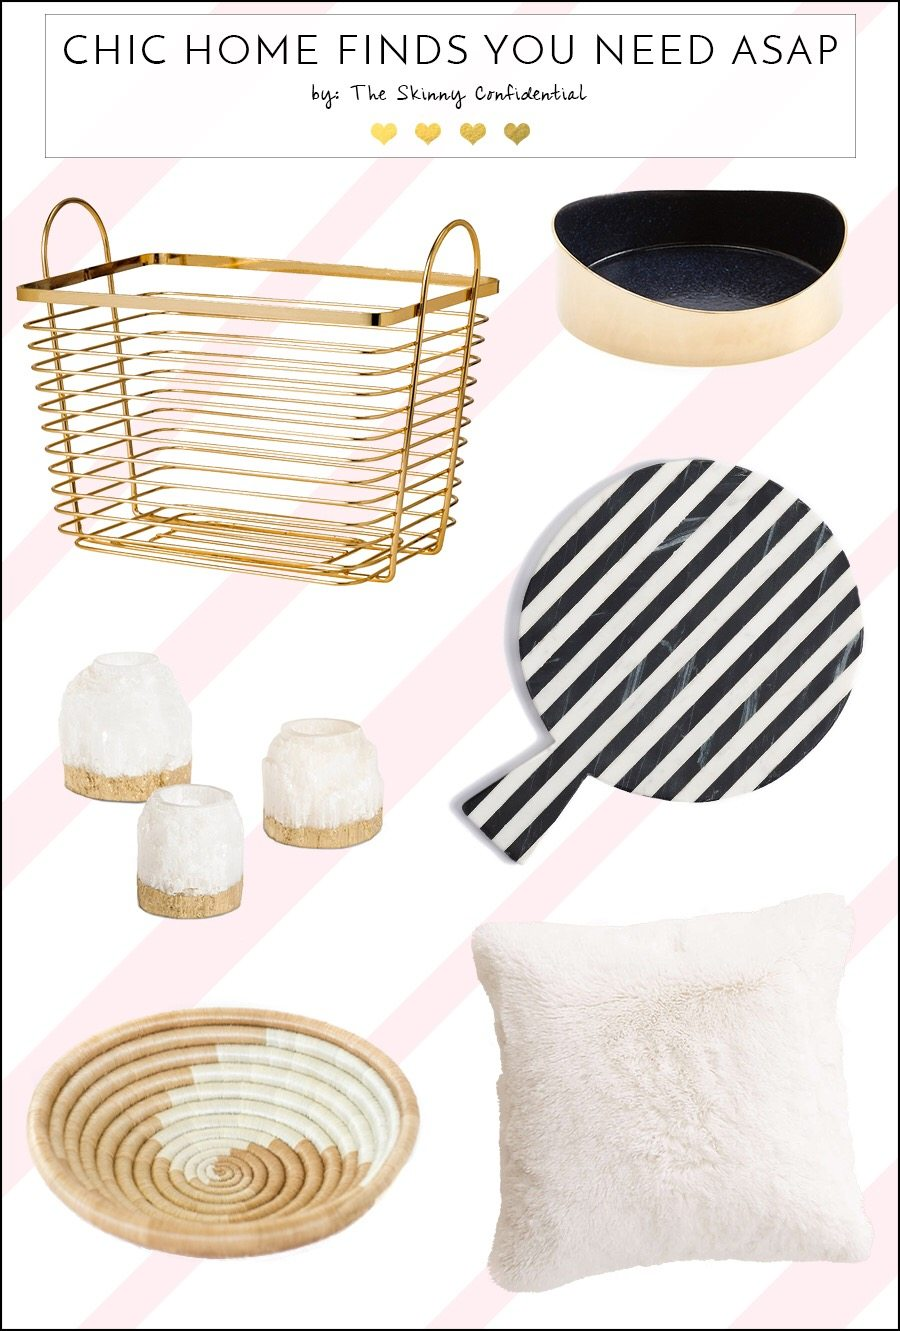 Super chic home decor finds you're definitely going to want! A pillow, gold basket for laundry or storage, and more! by The Skinny Confidential